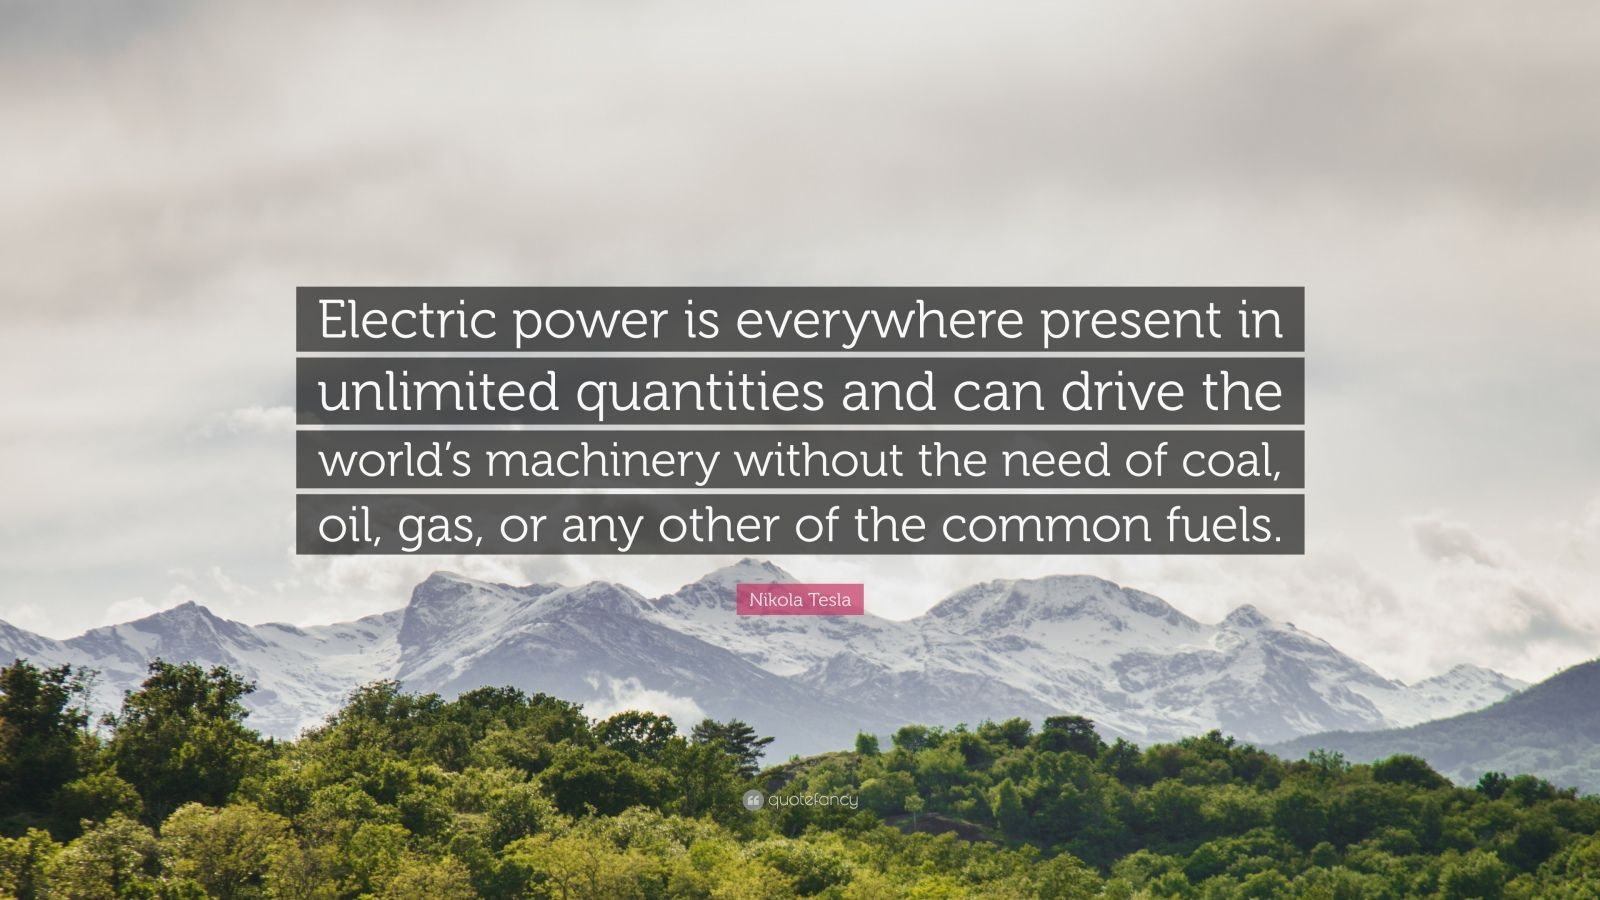 """Nikola Tesla Quote: """"Electric power is everywhere present in unlimited quantities and can drive the world's machinery without the need of coal, oil, gas, or any other of the common fuels."""""""